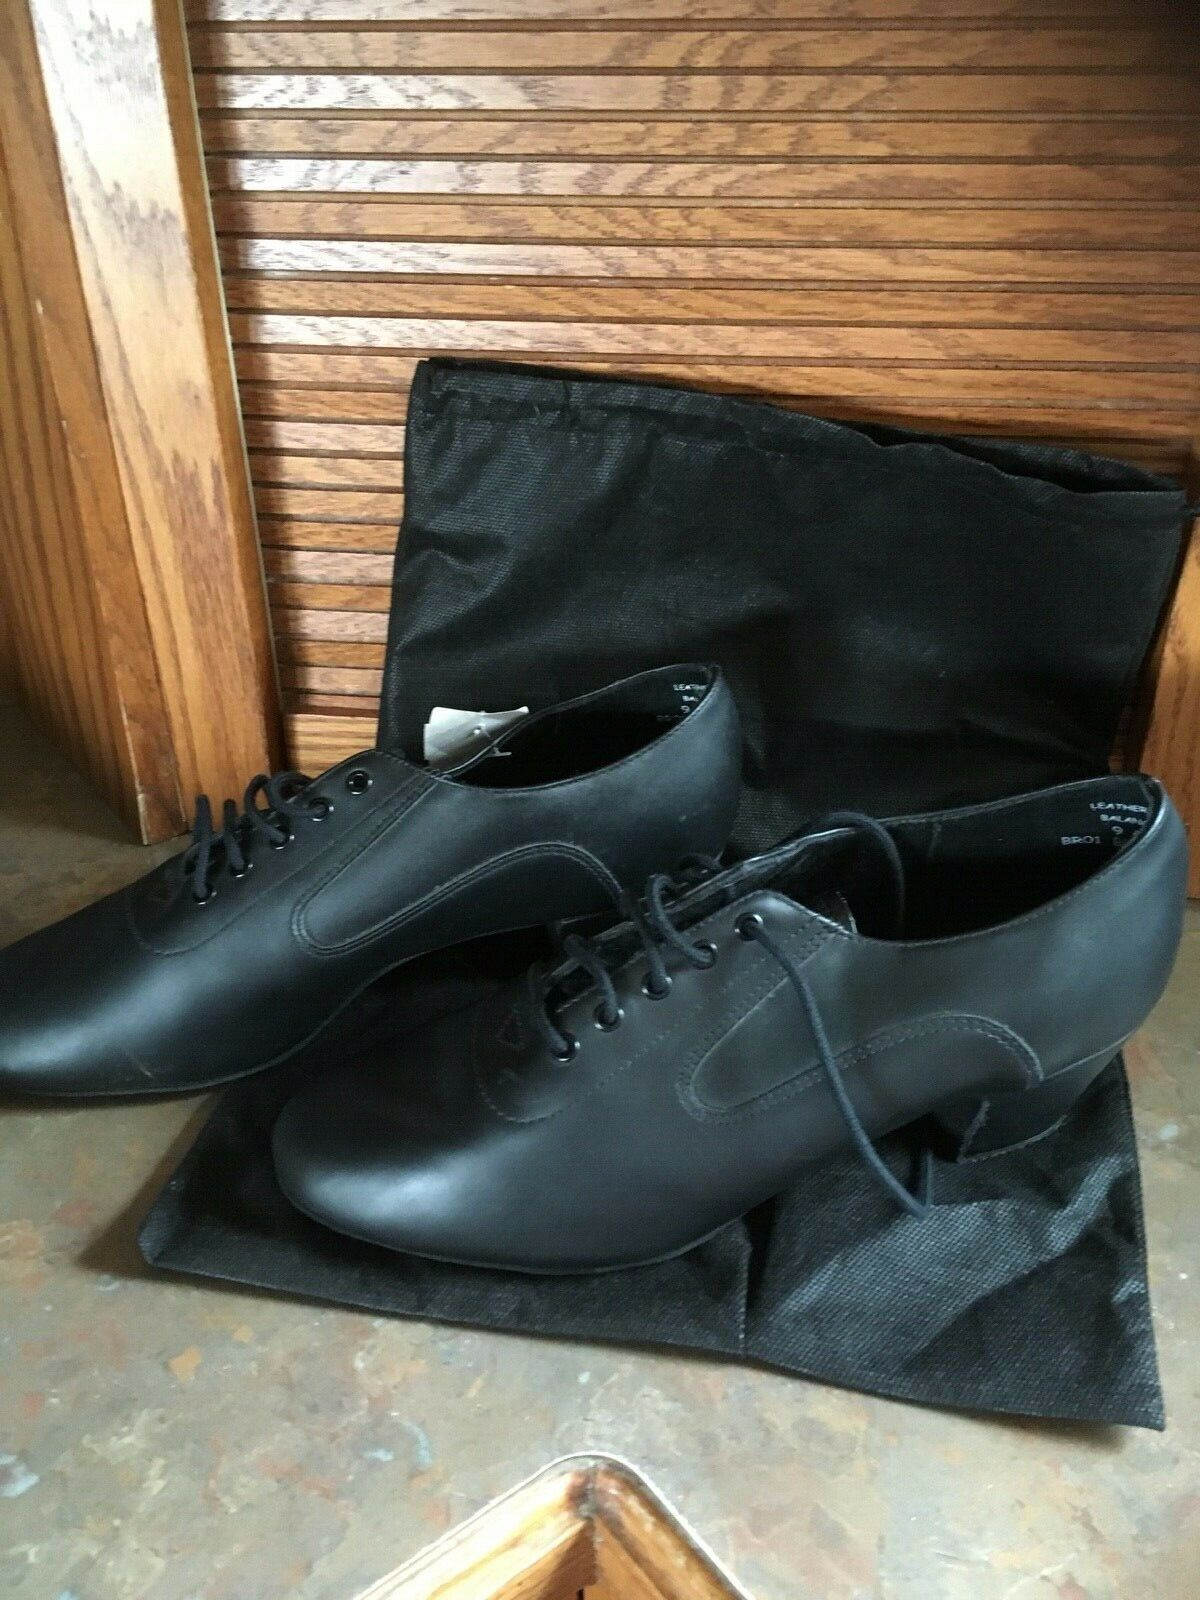 Capezio City Men's Latin Dance Shoes Black Leather  NEW!  9.5